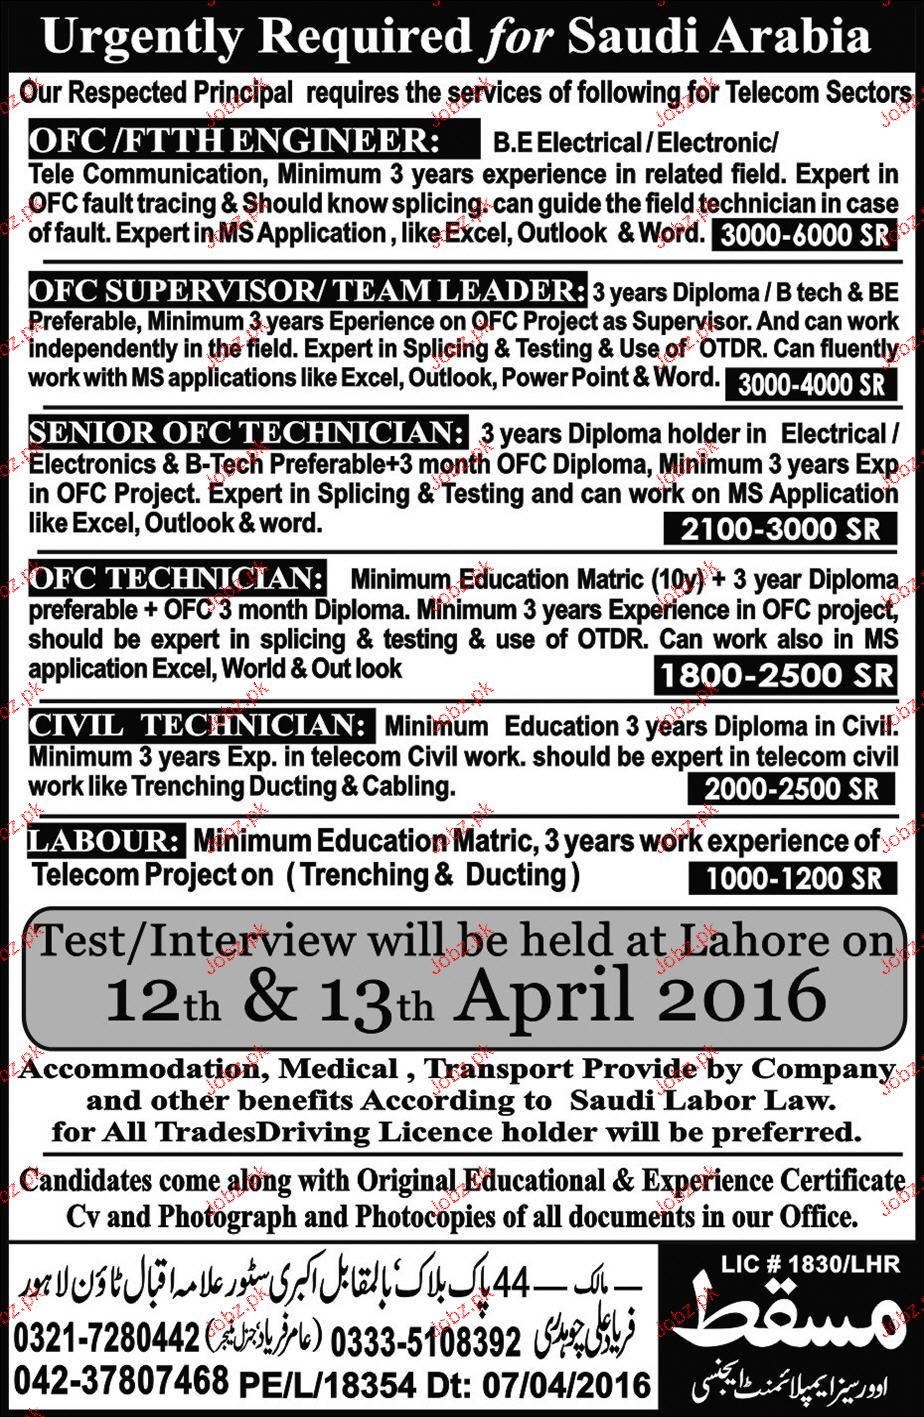 Ftth Engineers Ofc Supervisor Job Opportunity 2019 Job